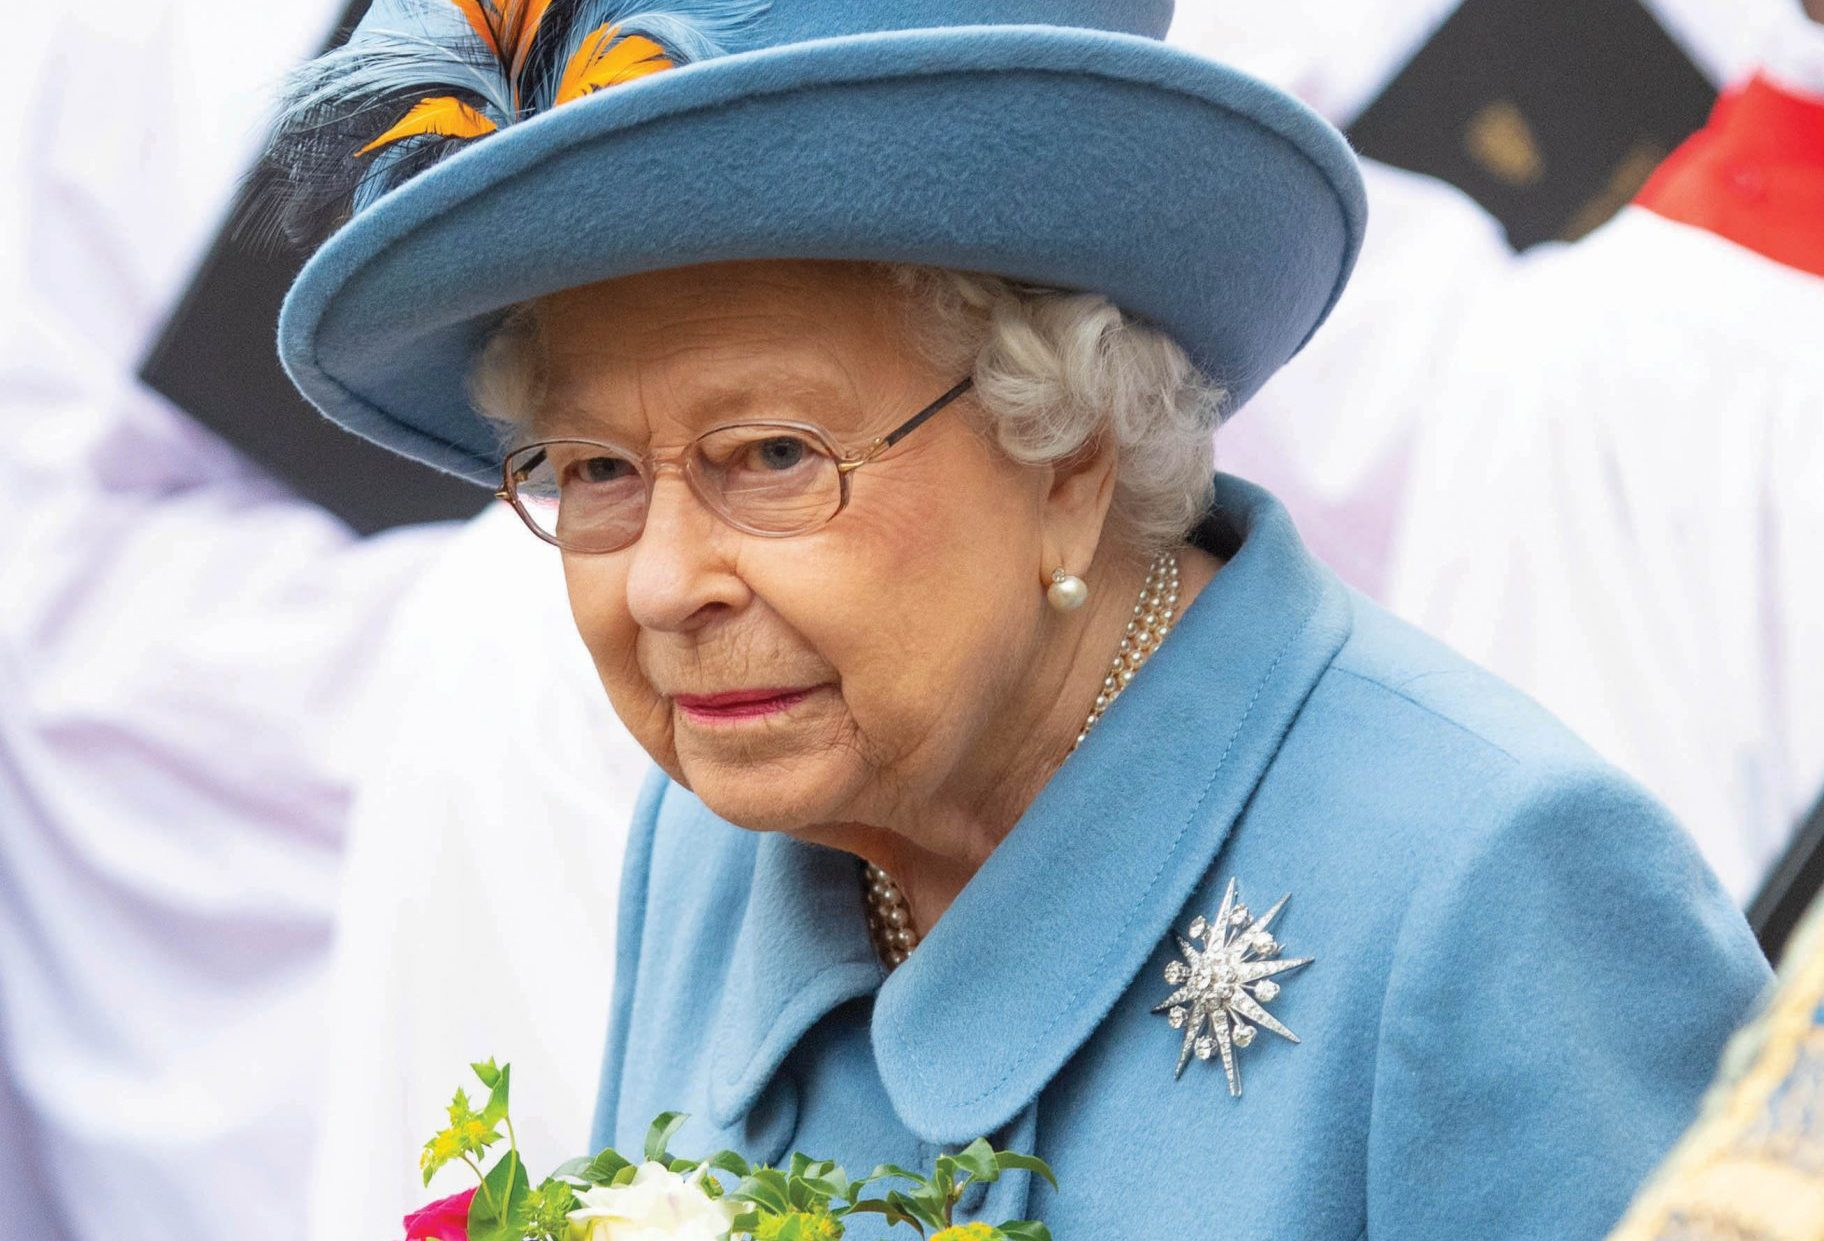 What time is the Queen's coronavirus speech this weekend?